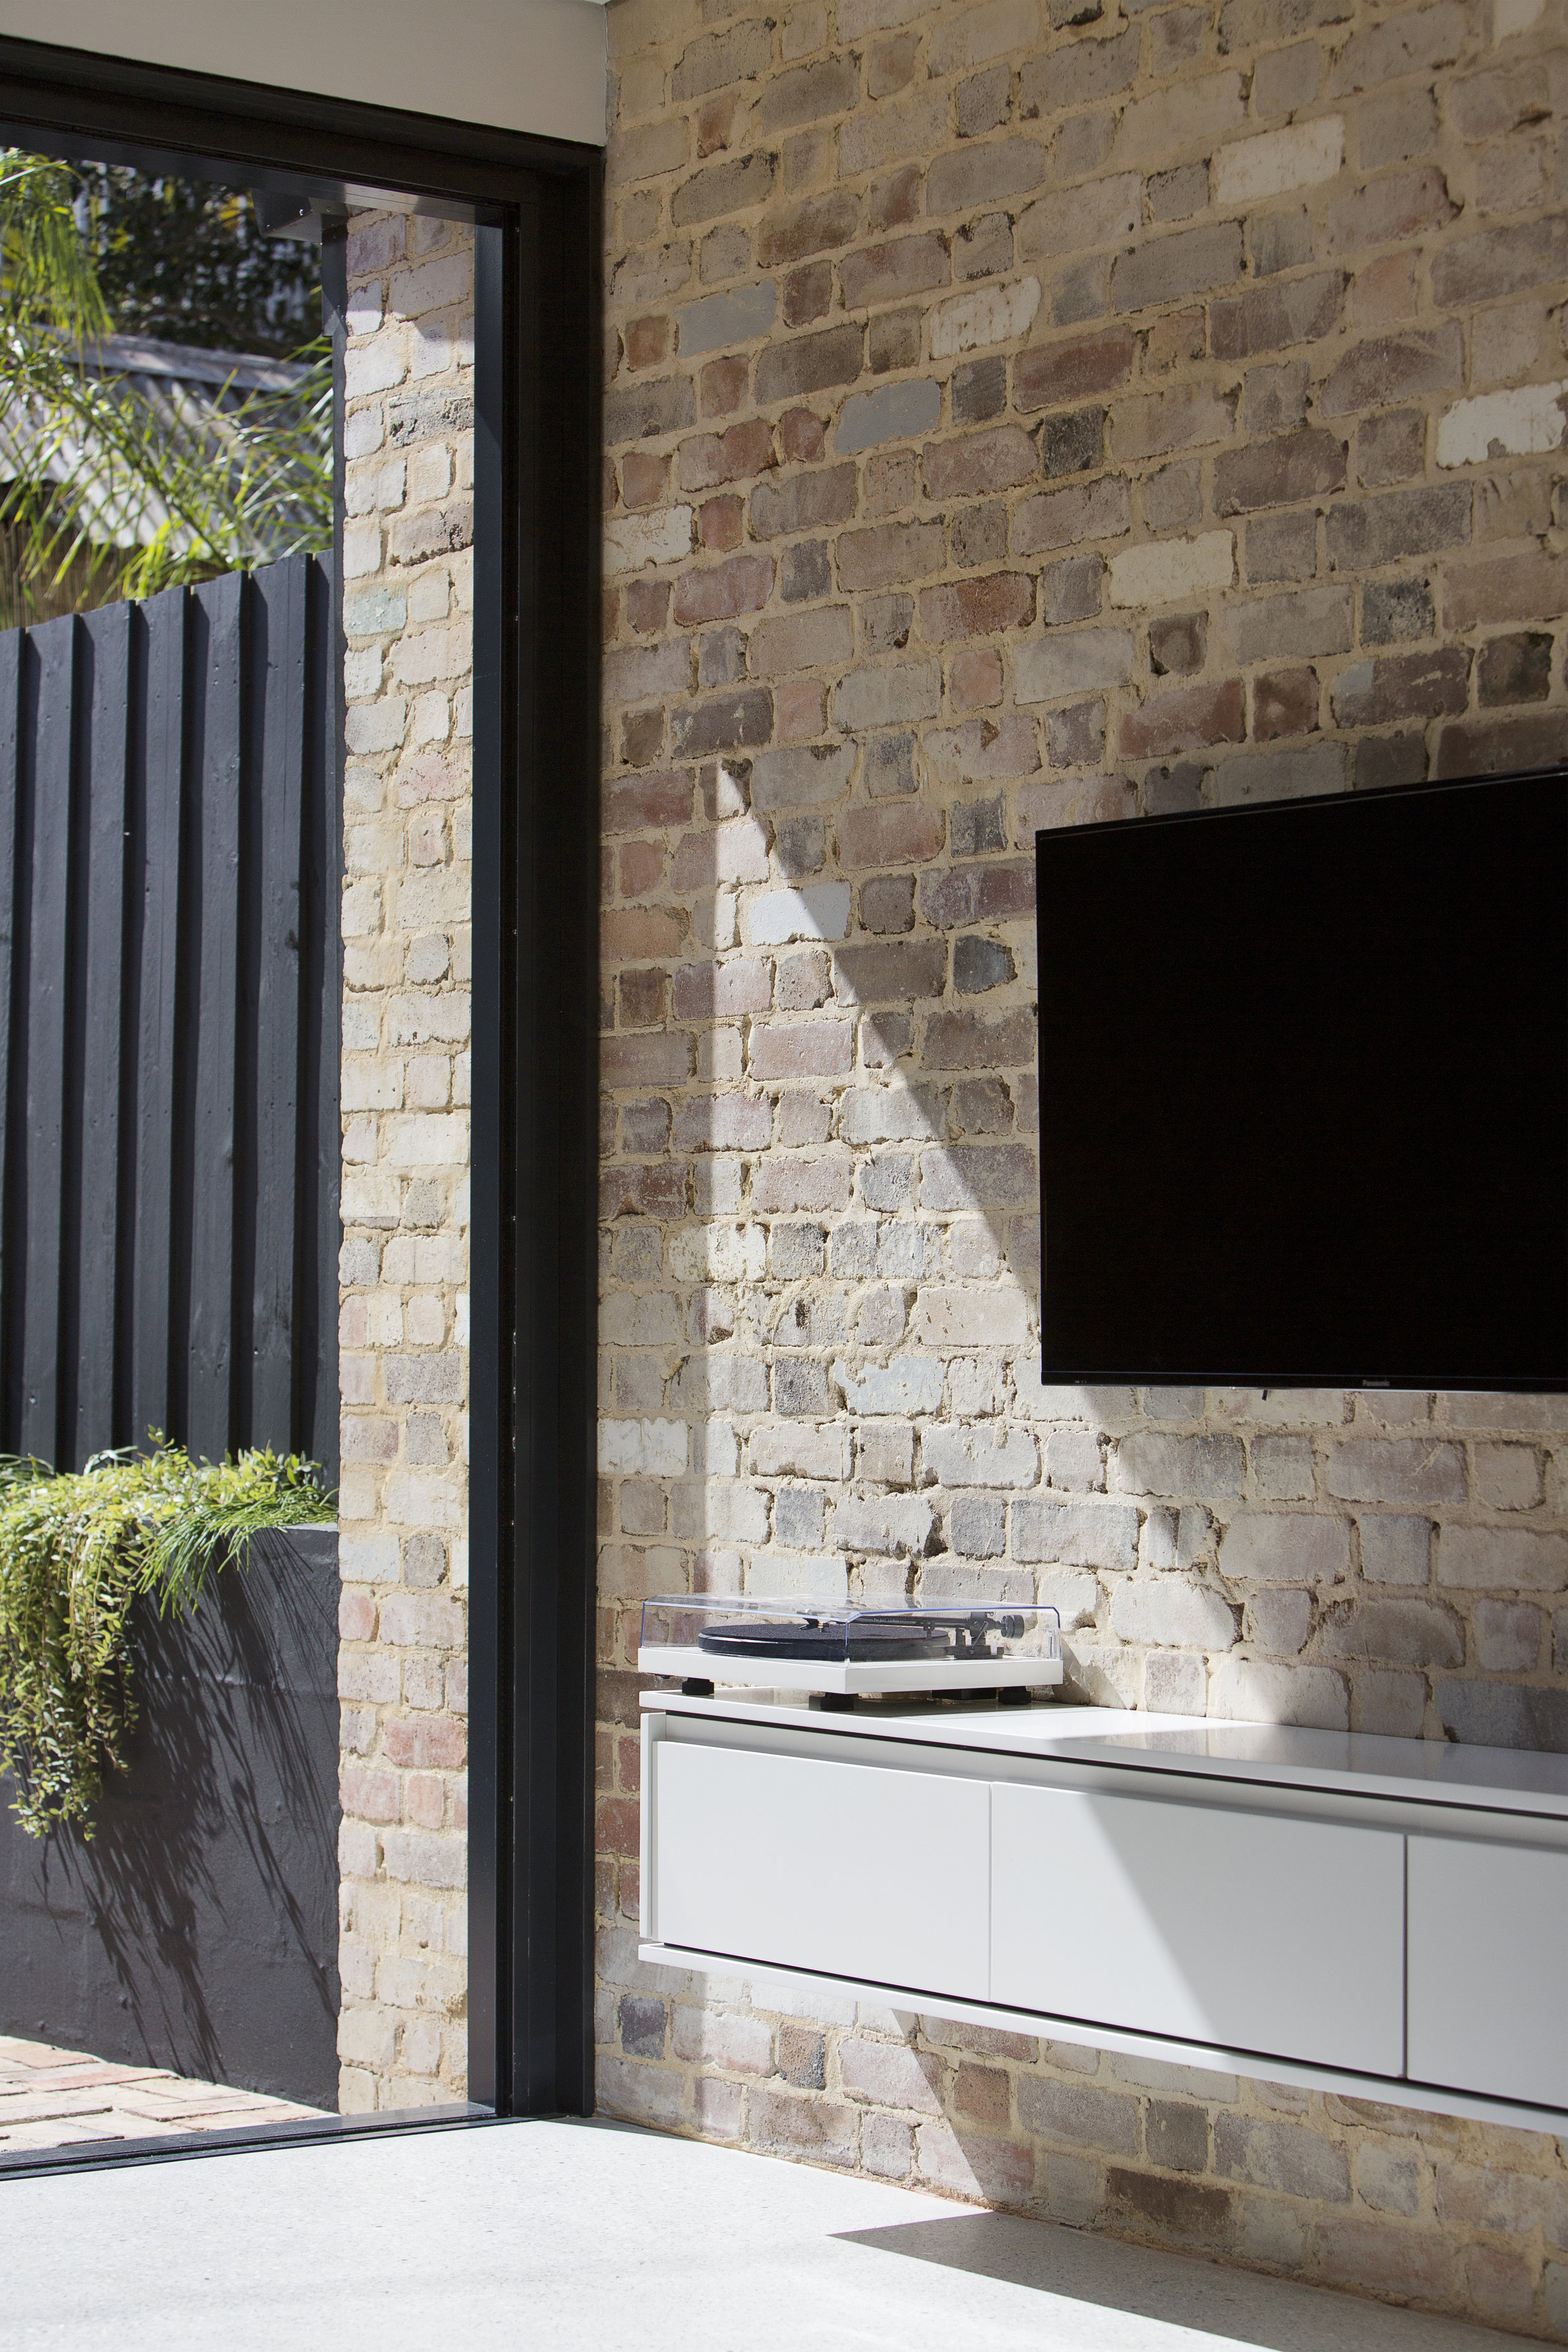 ABOUT US - If you are wanting to renovate your house, or even do a complete new build, but you're not sure where to start, we'd love to help you. even if you're just playing with the idea in your mind but not sure about where to start, or if you feel ready to commit to it, we are here to help…